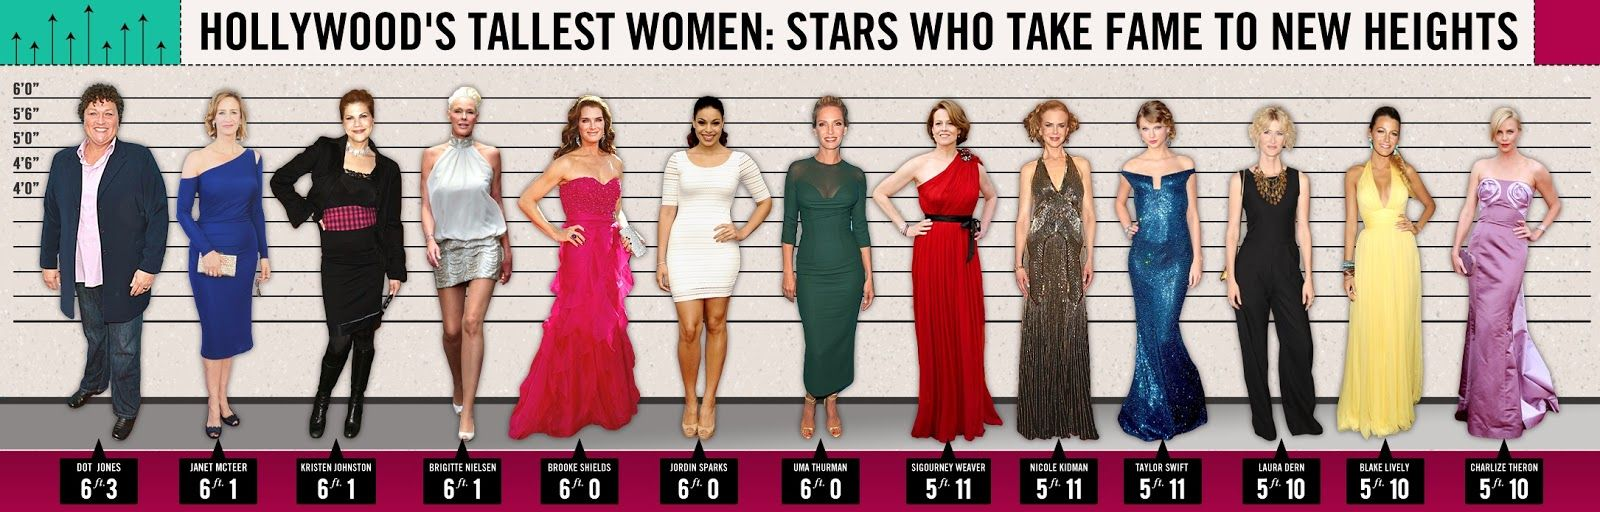 Height Of Female Hollywood Celebrities Celebrity Heights How Tall Are Celebrities Heights Of Celebrities Who S Th Tall Female Celebrities Tall Women Women